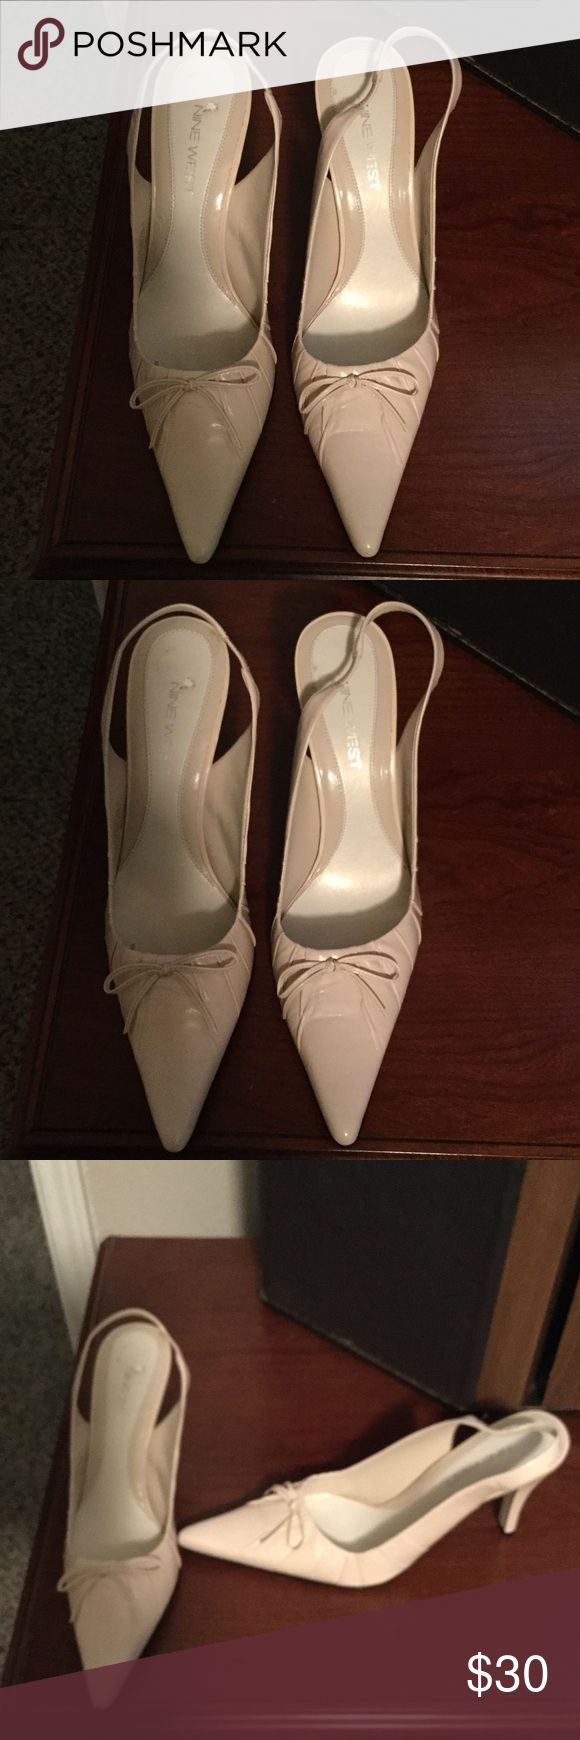 Nine West Cream Pump These shoes are in great condition worn maybe twice!!! Nine West Shoes Heels